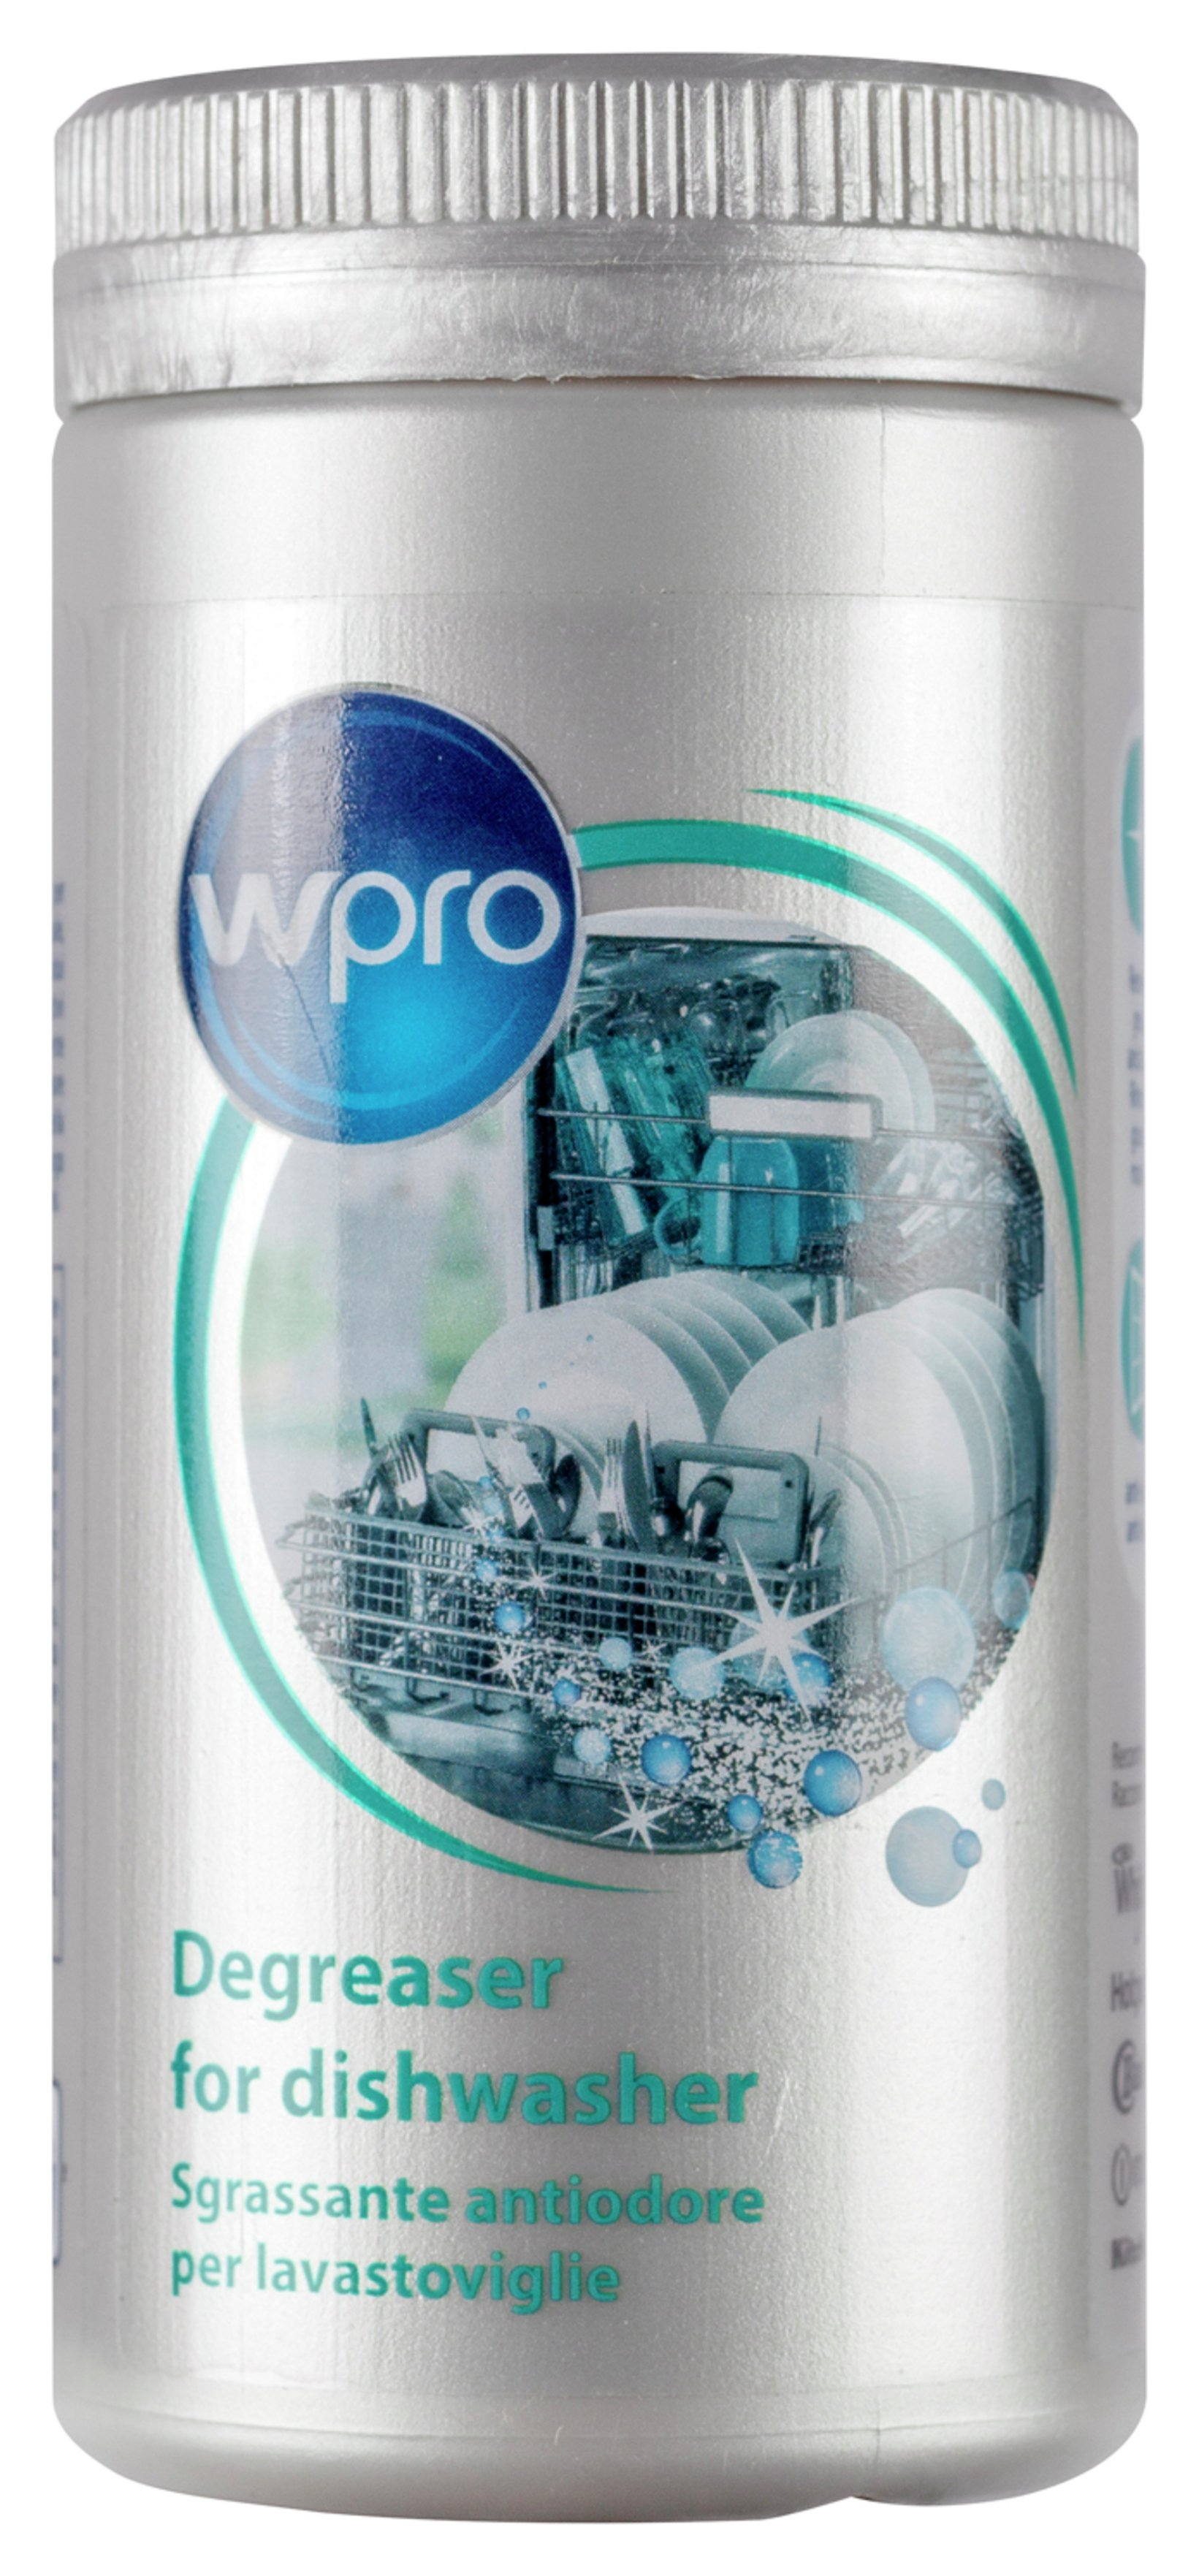 Image of Wpro Dishwasher Degreaser